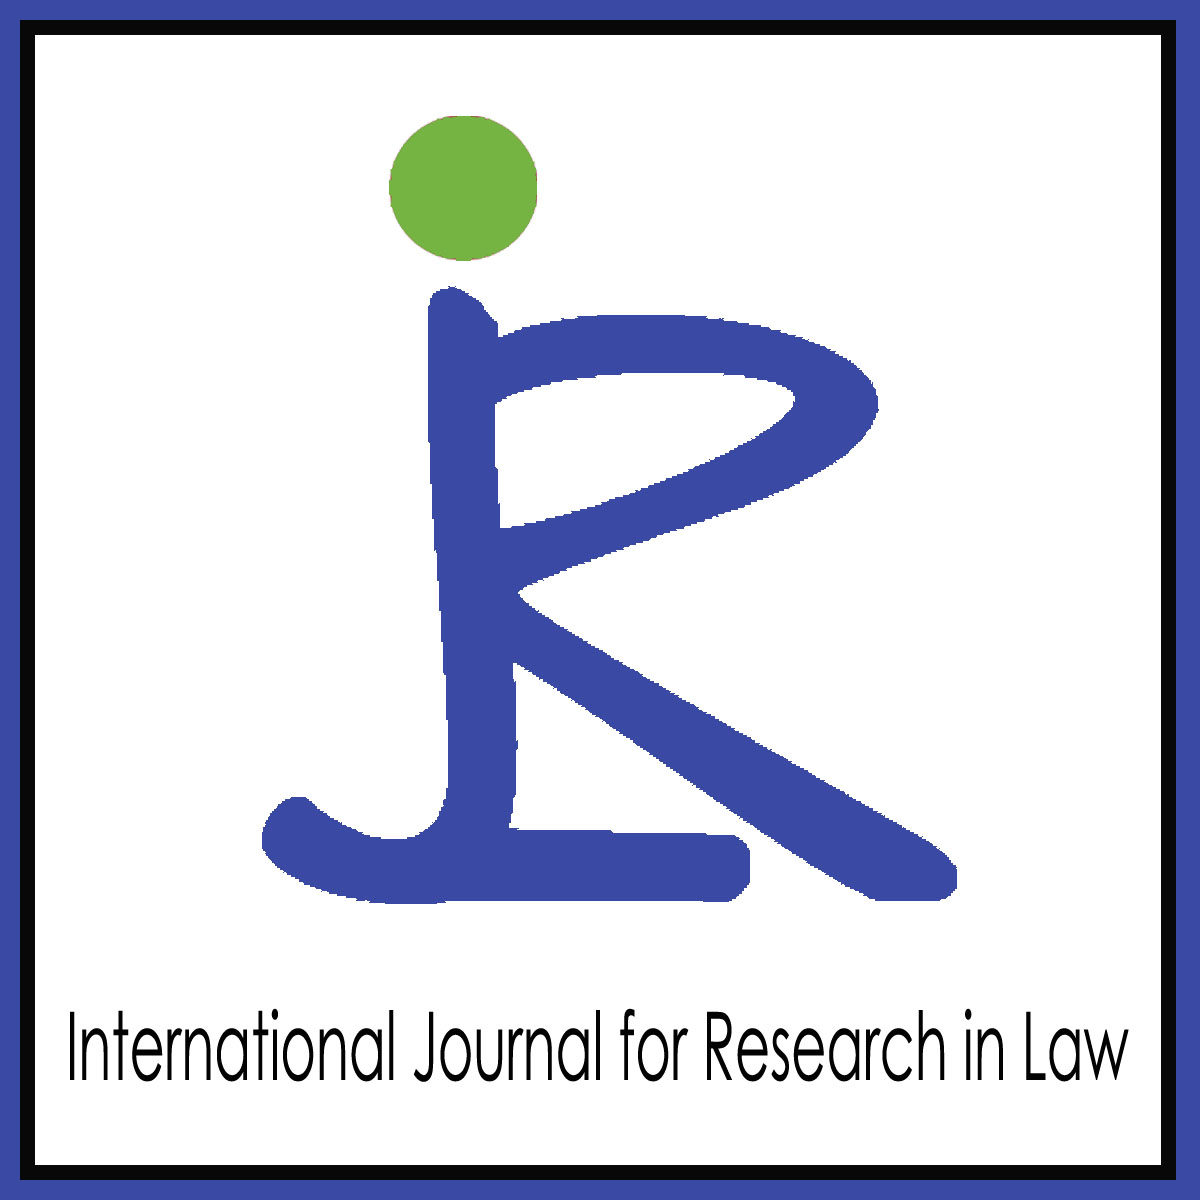 ijrl, Call for Papers: International Journal for Research in Law, Volume 2 Issue 2